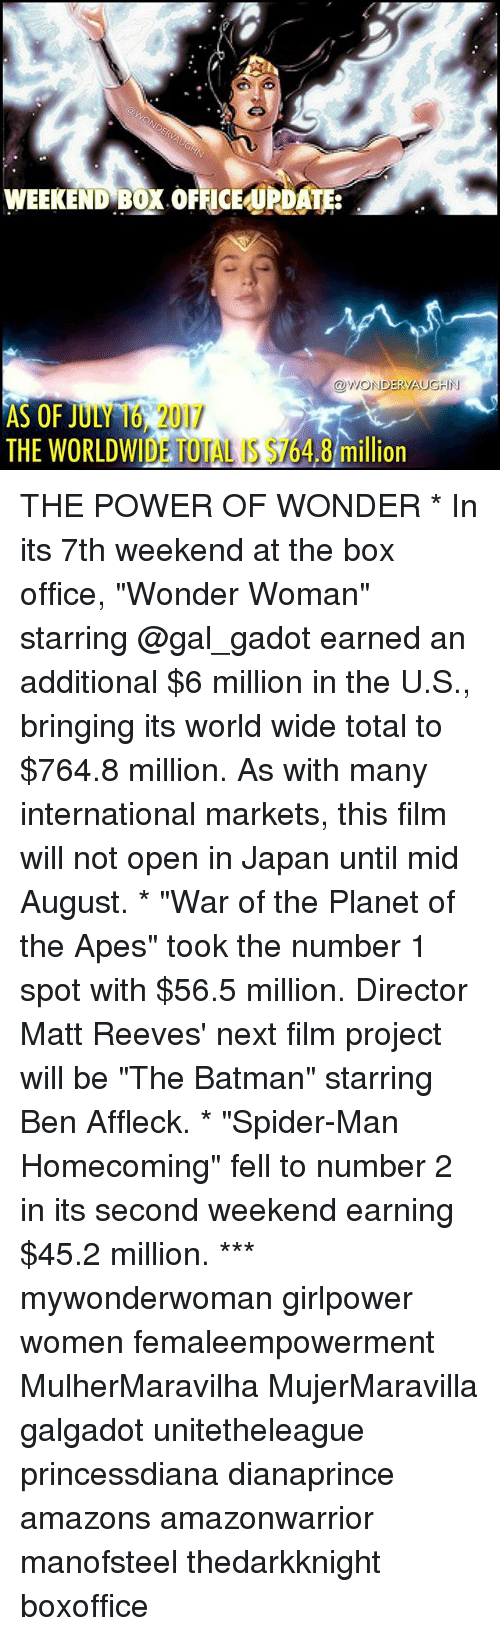 """spider-man-homecoming: WEEKEND BOX OFFICEUPDATE:  OWONDERVAUGHIN  AS OF JULY 16 2017  THE WORLDWIDE TOTAL IS $164.8 mill  THE WORLDWIDE TOTAL S $764.8 million  ion THE POWER OF WONDER * In its 7th weekend at the box office, """"Wonder Woman"""" starring @gal_gadot earned an additional $6 million in the U.S., bringing its world wide total to $764.8 million. As with many international markets, this film will not open in Japan until mid August. * """"War of the Planet of the Apes"""" took the number 1 spot with $56.5 million. Director Matt Reeves' next film project will be """"The Batman"""" starring Ben Affleck. * """"Spider-Man Homecoming"""" fell to number 2 in its second weekend earning $45.2 million. *** mywonderwoman girlpower women femaleempowerment MulherMaravilha MujerMaravilla galgadot unitetheleague princessdiana dianaprince amazons amazonwarrior manofsteel thedarkknight boxoffice"""